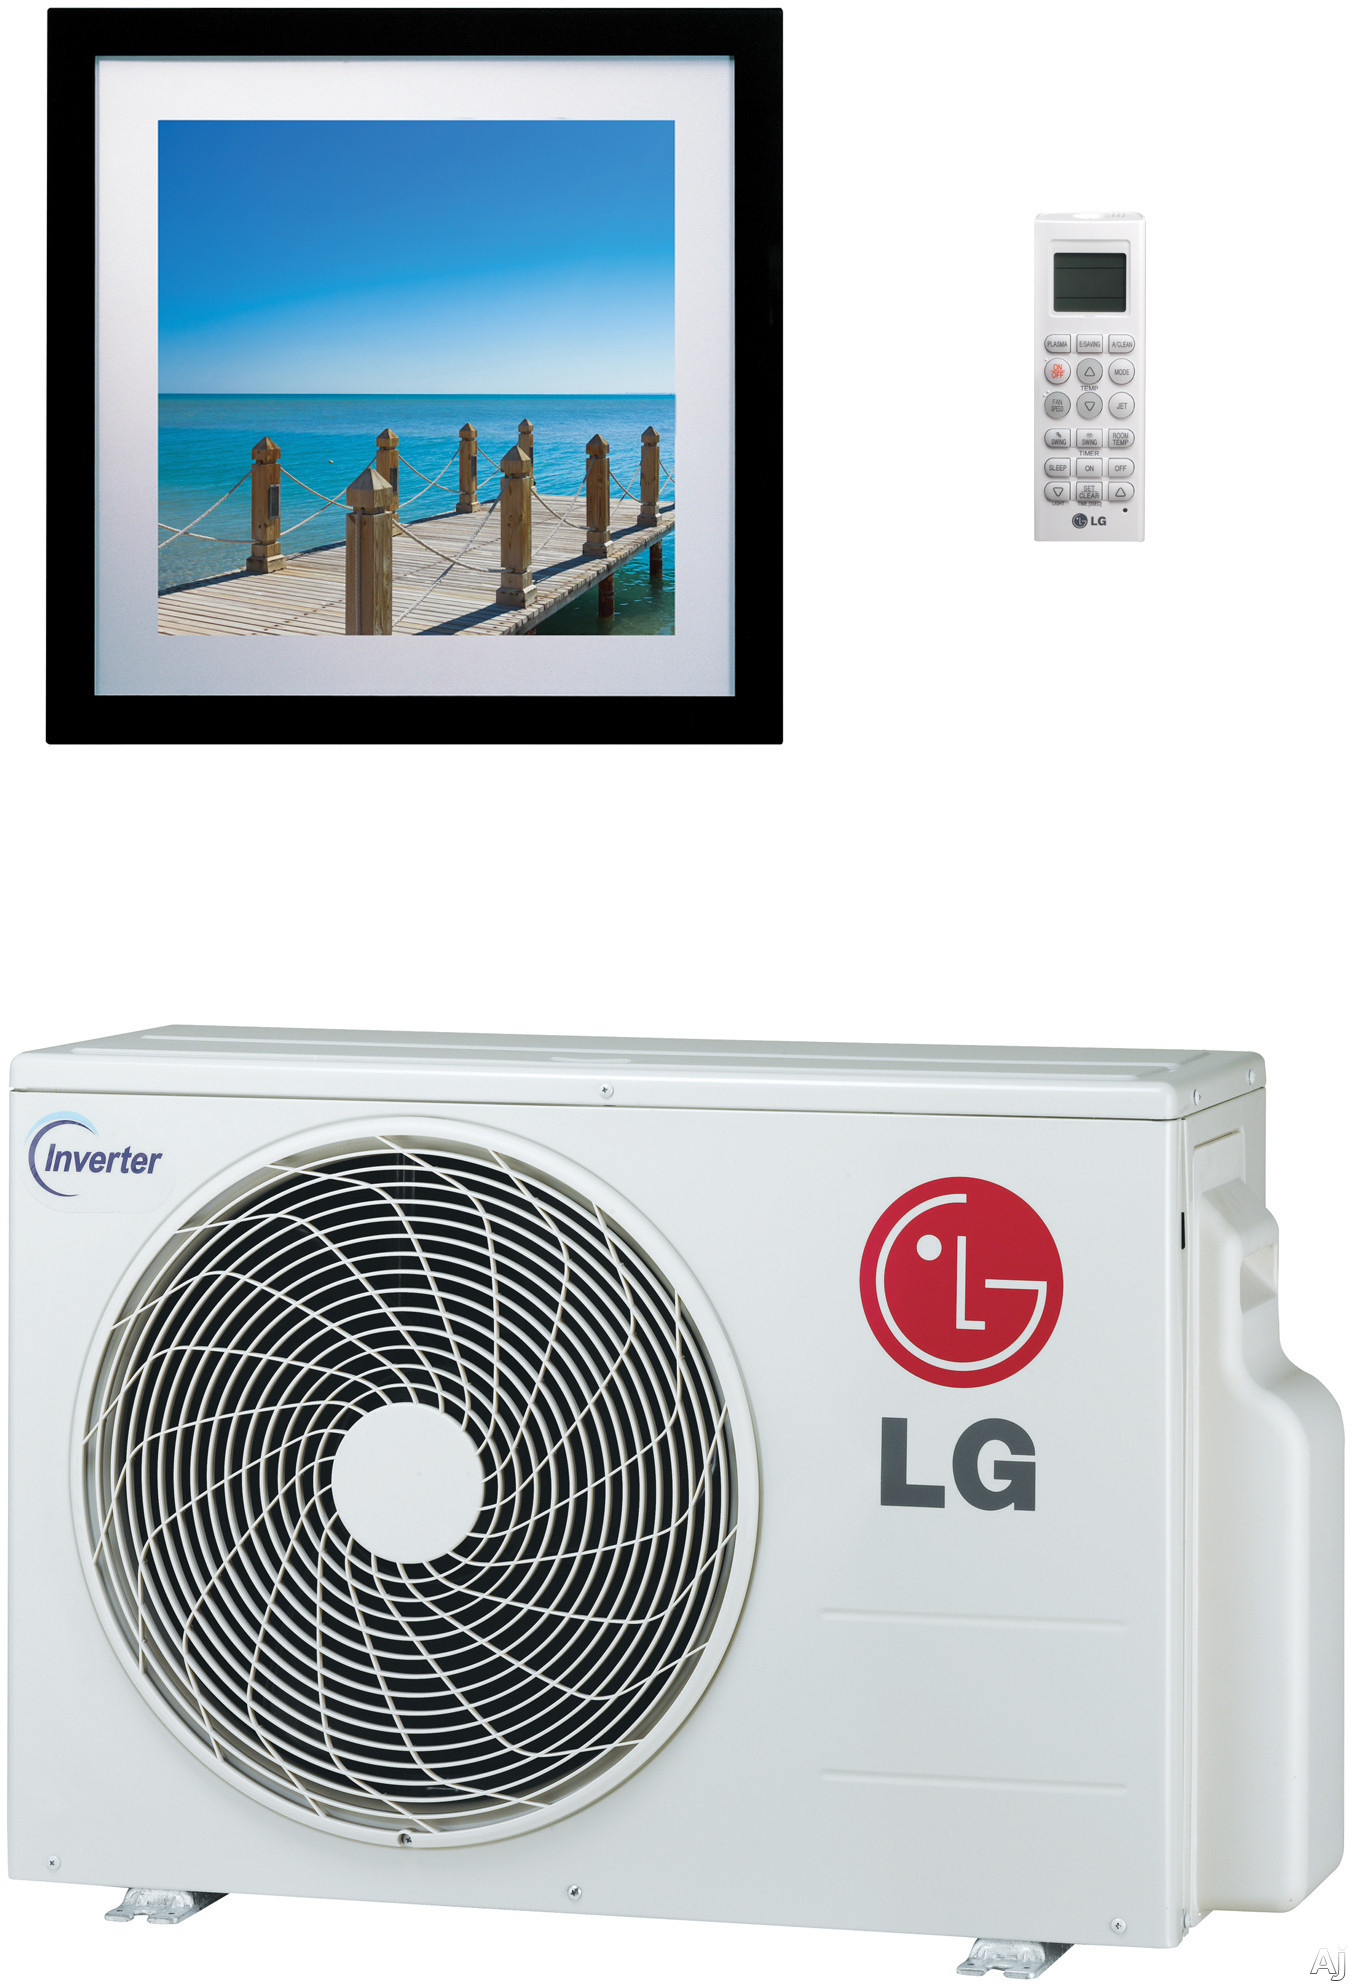 LG Art Cool Gallery LA120HVP 11,200 BTU Single Zone Wall-Mount Ductless Split System with 13,300 BTU Heat Pump, 12.0 EER, Inverter, ENERGY STAR and R-410A Refrigerant (LAN120HVP Indoor/LAU120HVP Outdoor) LA120HVP